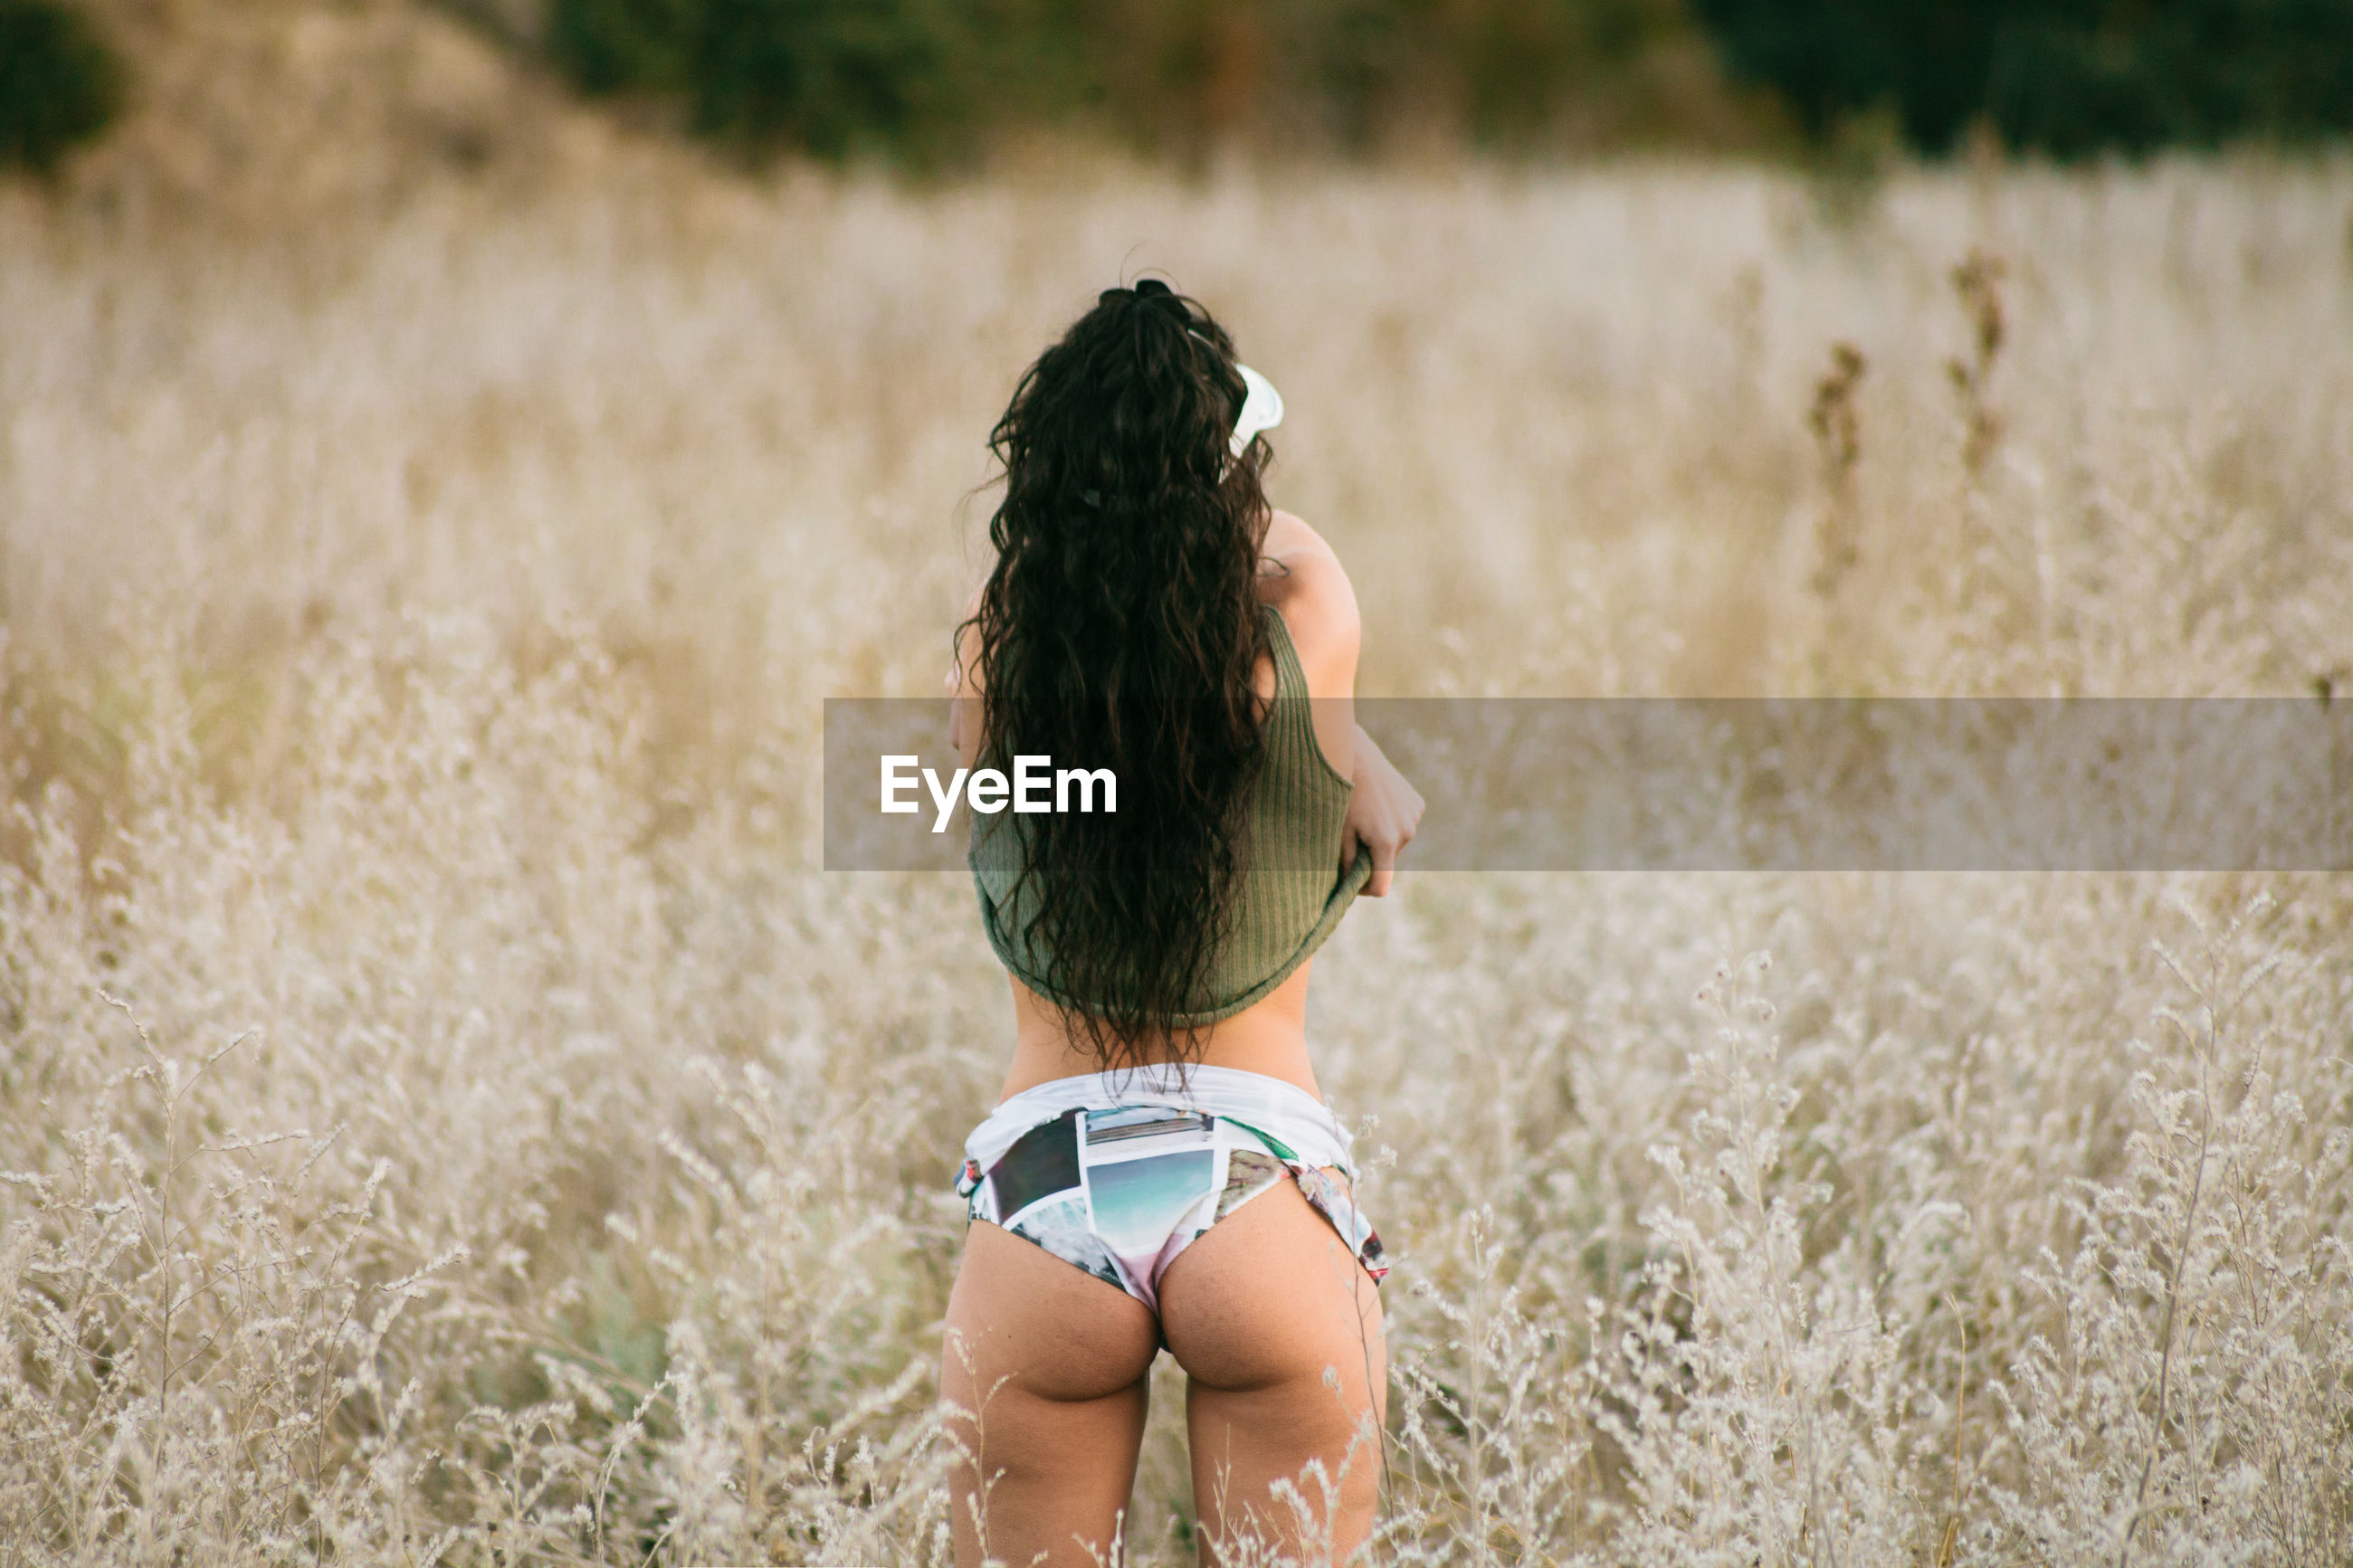 Rear view of young woman undressing while standing on grassy field